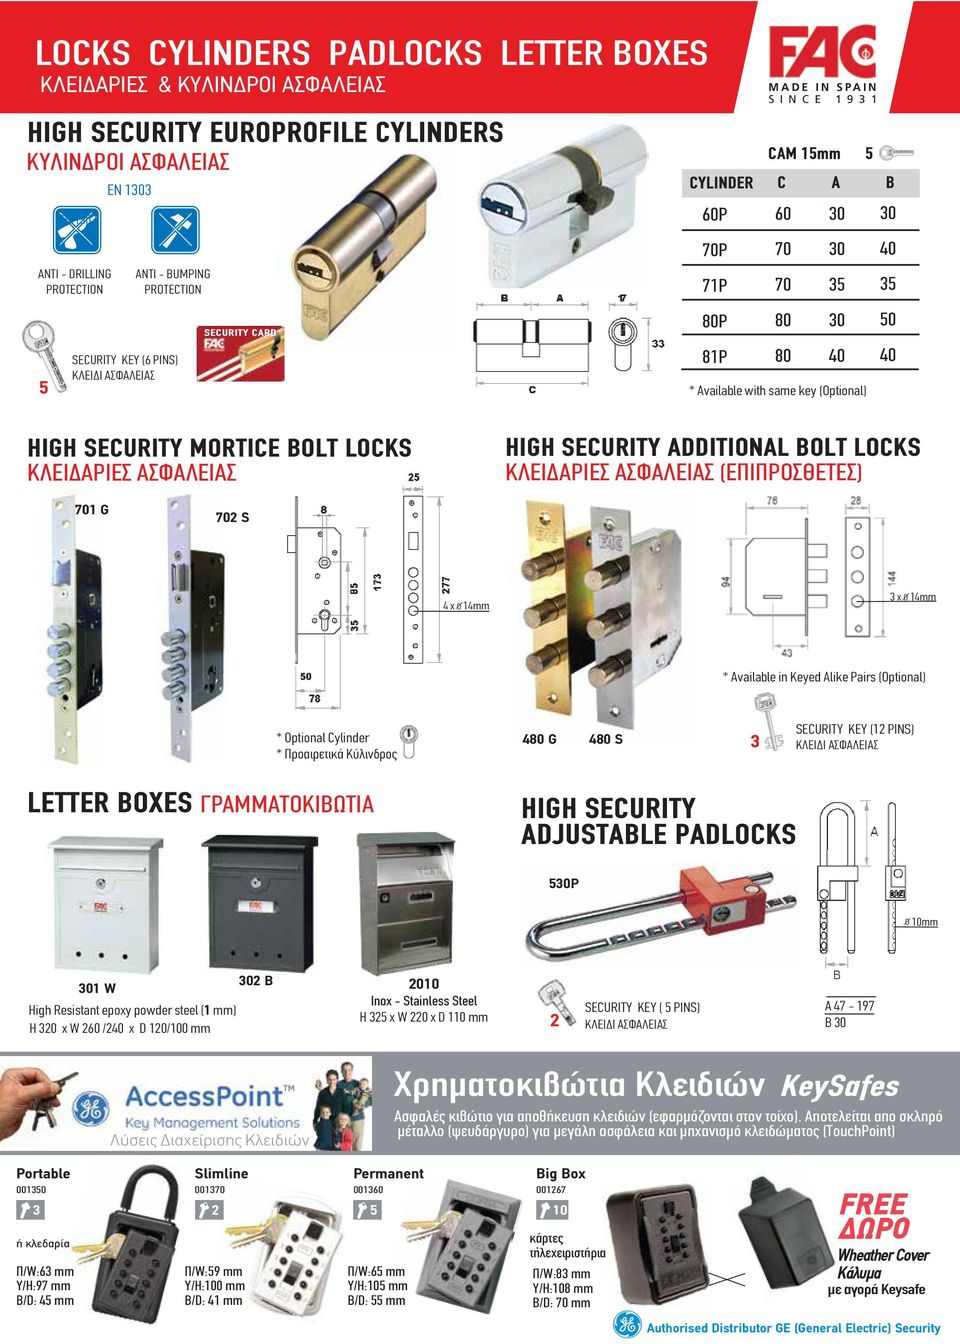 LOCKS ΚΛΕΙ ΑΡΙΕΣ ΑΣΦΑΛΕΙΑΣ HIGH SECURITY ADDITIONAL BOLT LOCKS ΚΛΕΙ ΑΡΙΕΣ ΑΣΦΑΛΕΙΑΣ (EΠIΠΡΟΣΘΕΤΕΣ) 7 G 7 S 4 x O 4mm x O 4mm * Available in Keyed Alike Pairs (Optional) 5 * Optional Cylinder *